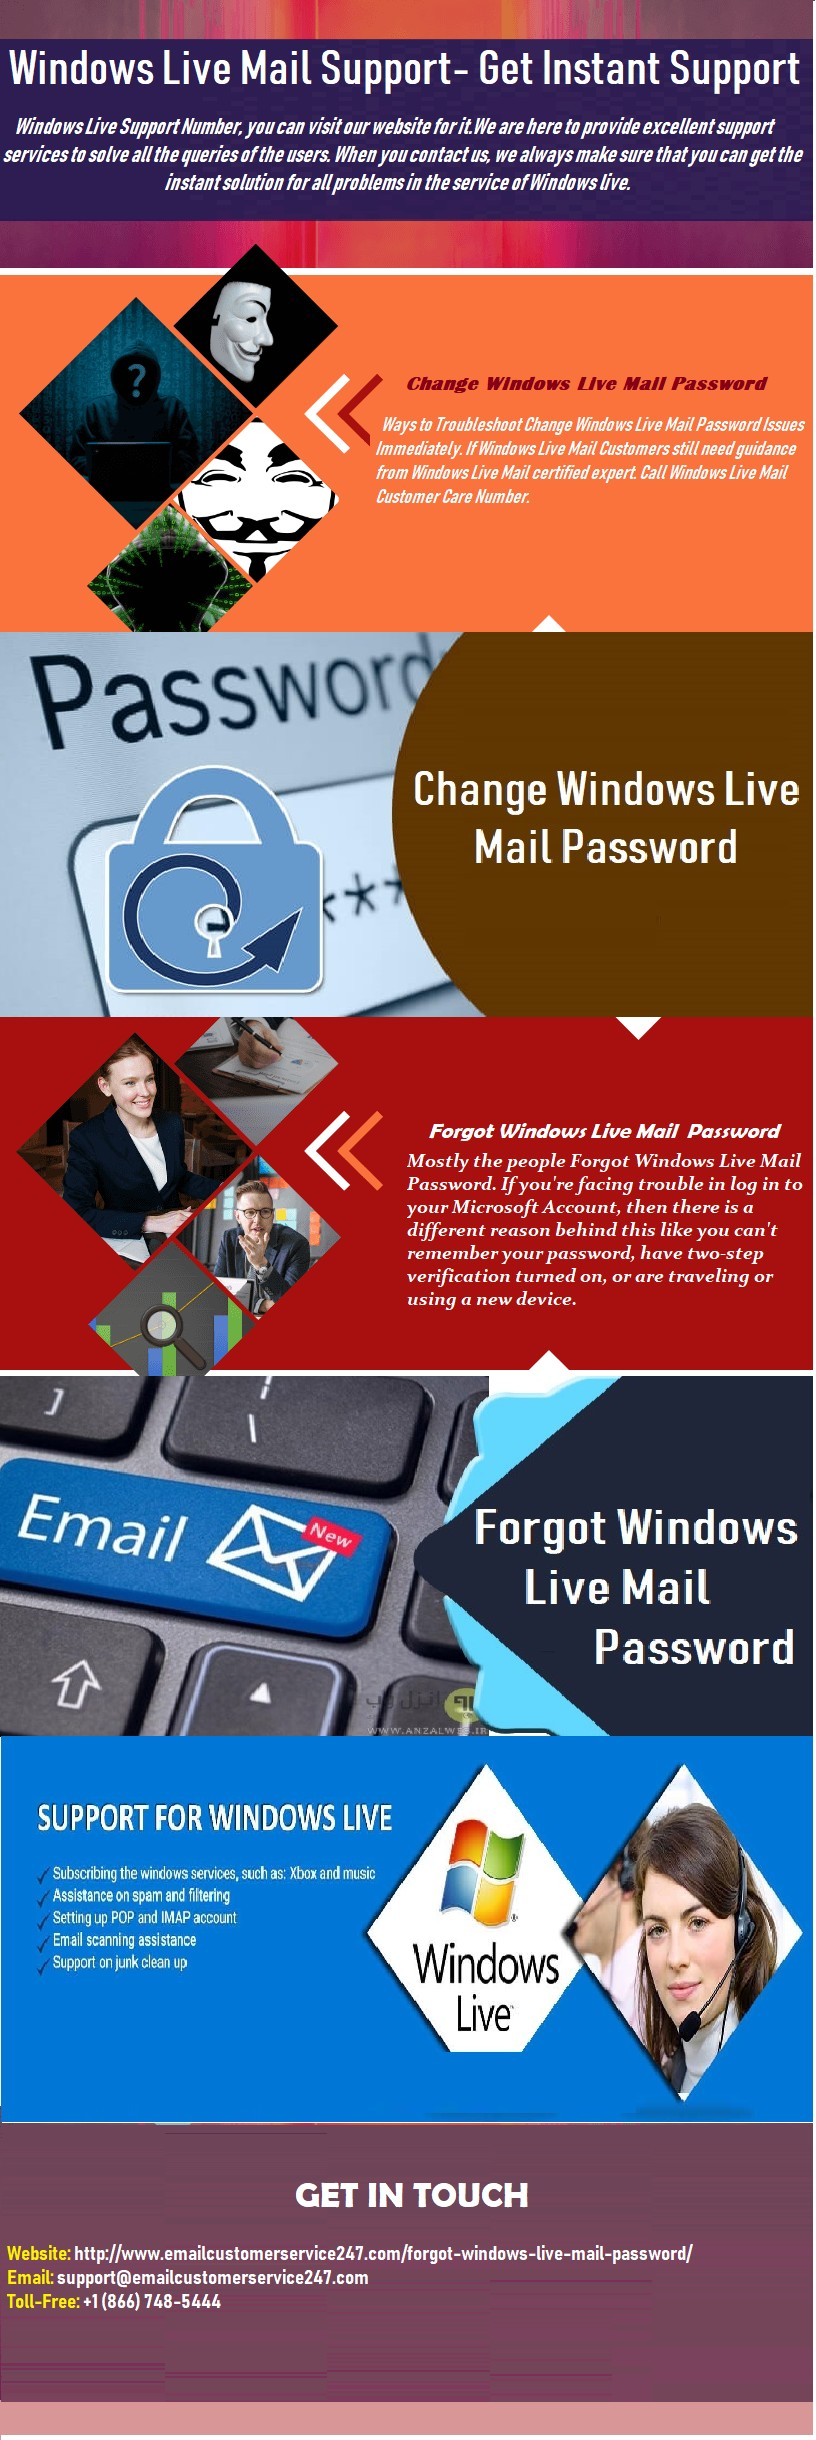 Forgot Windows Live Mail Password | Dial:+1-866-748-5444